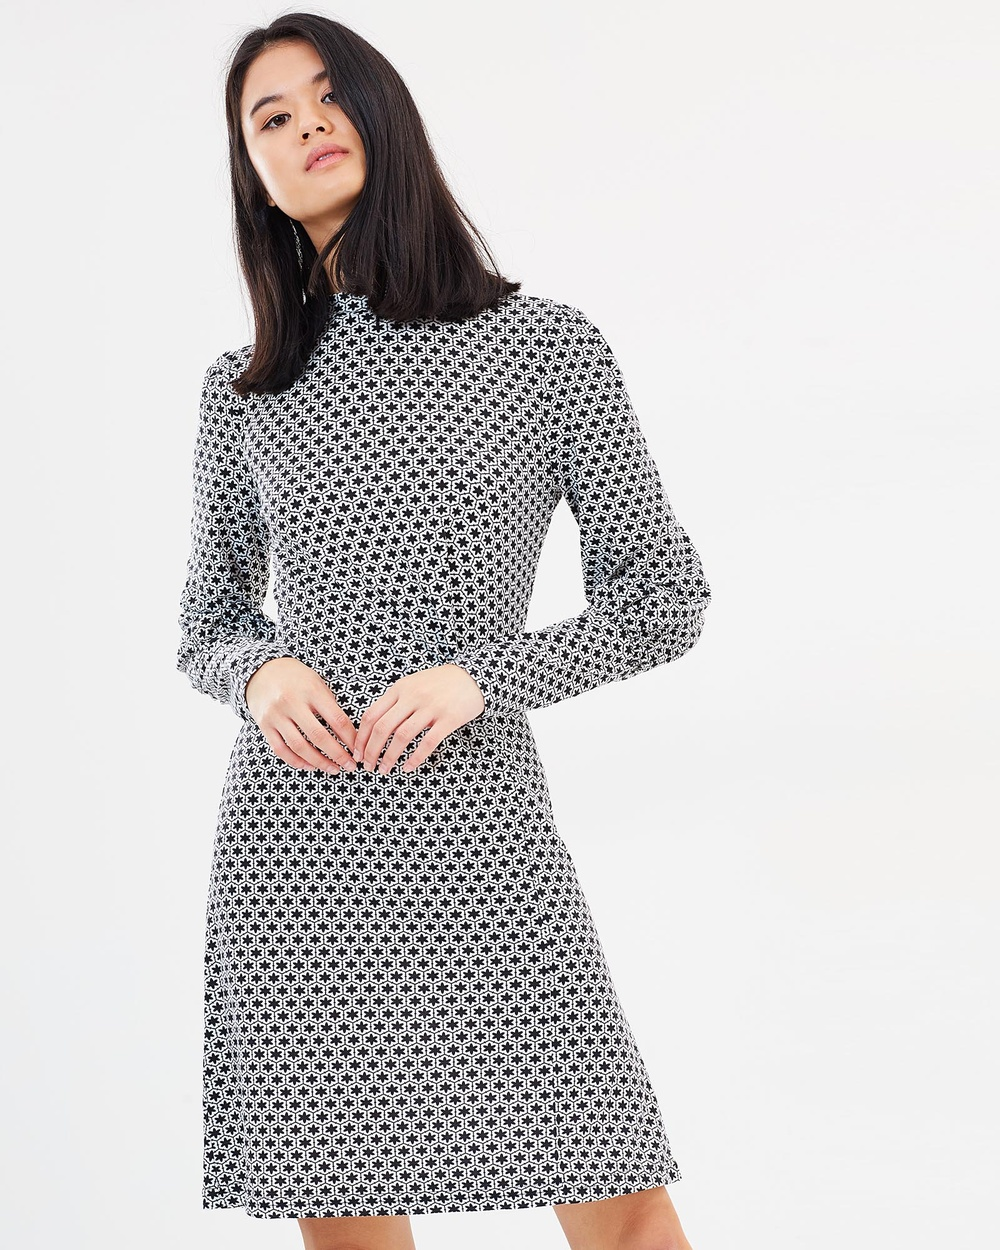 Otto Mode Another Love Dress Printed Dresses Black Another Love Dress